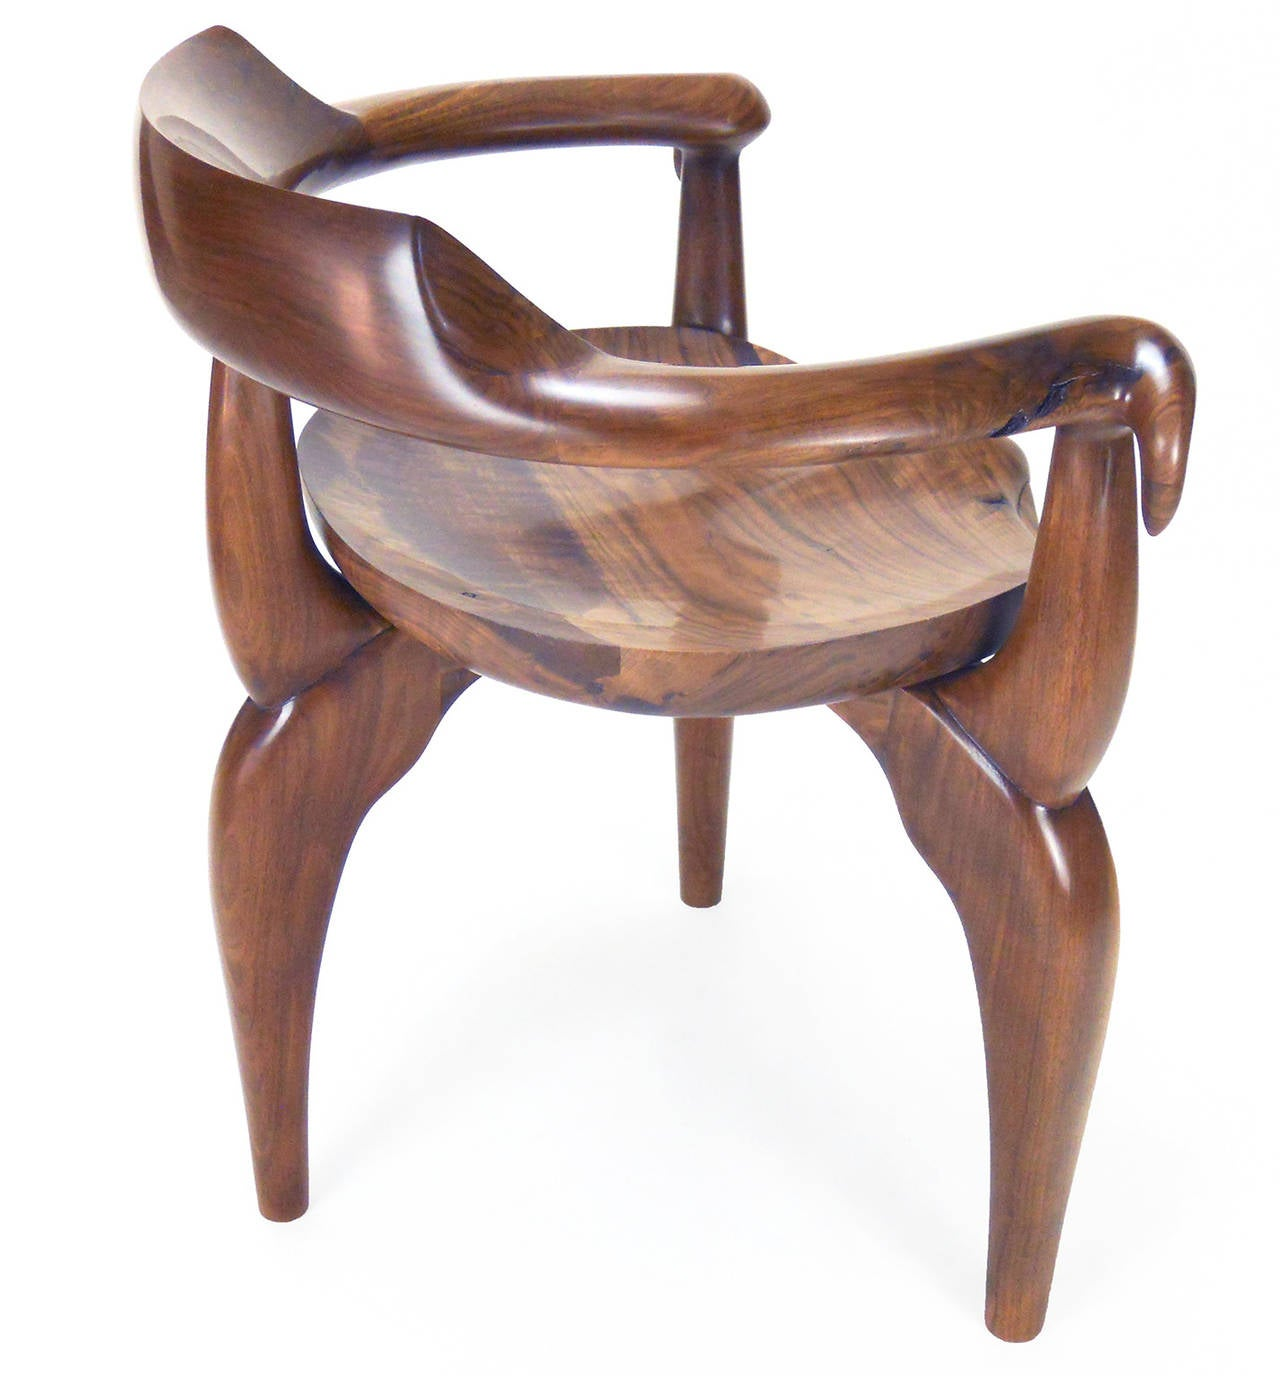 Hand-Carved Organic Armchair For Sale at 1stdibs